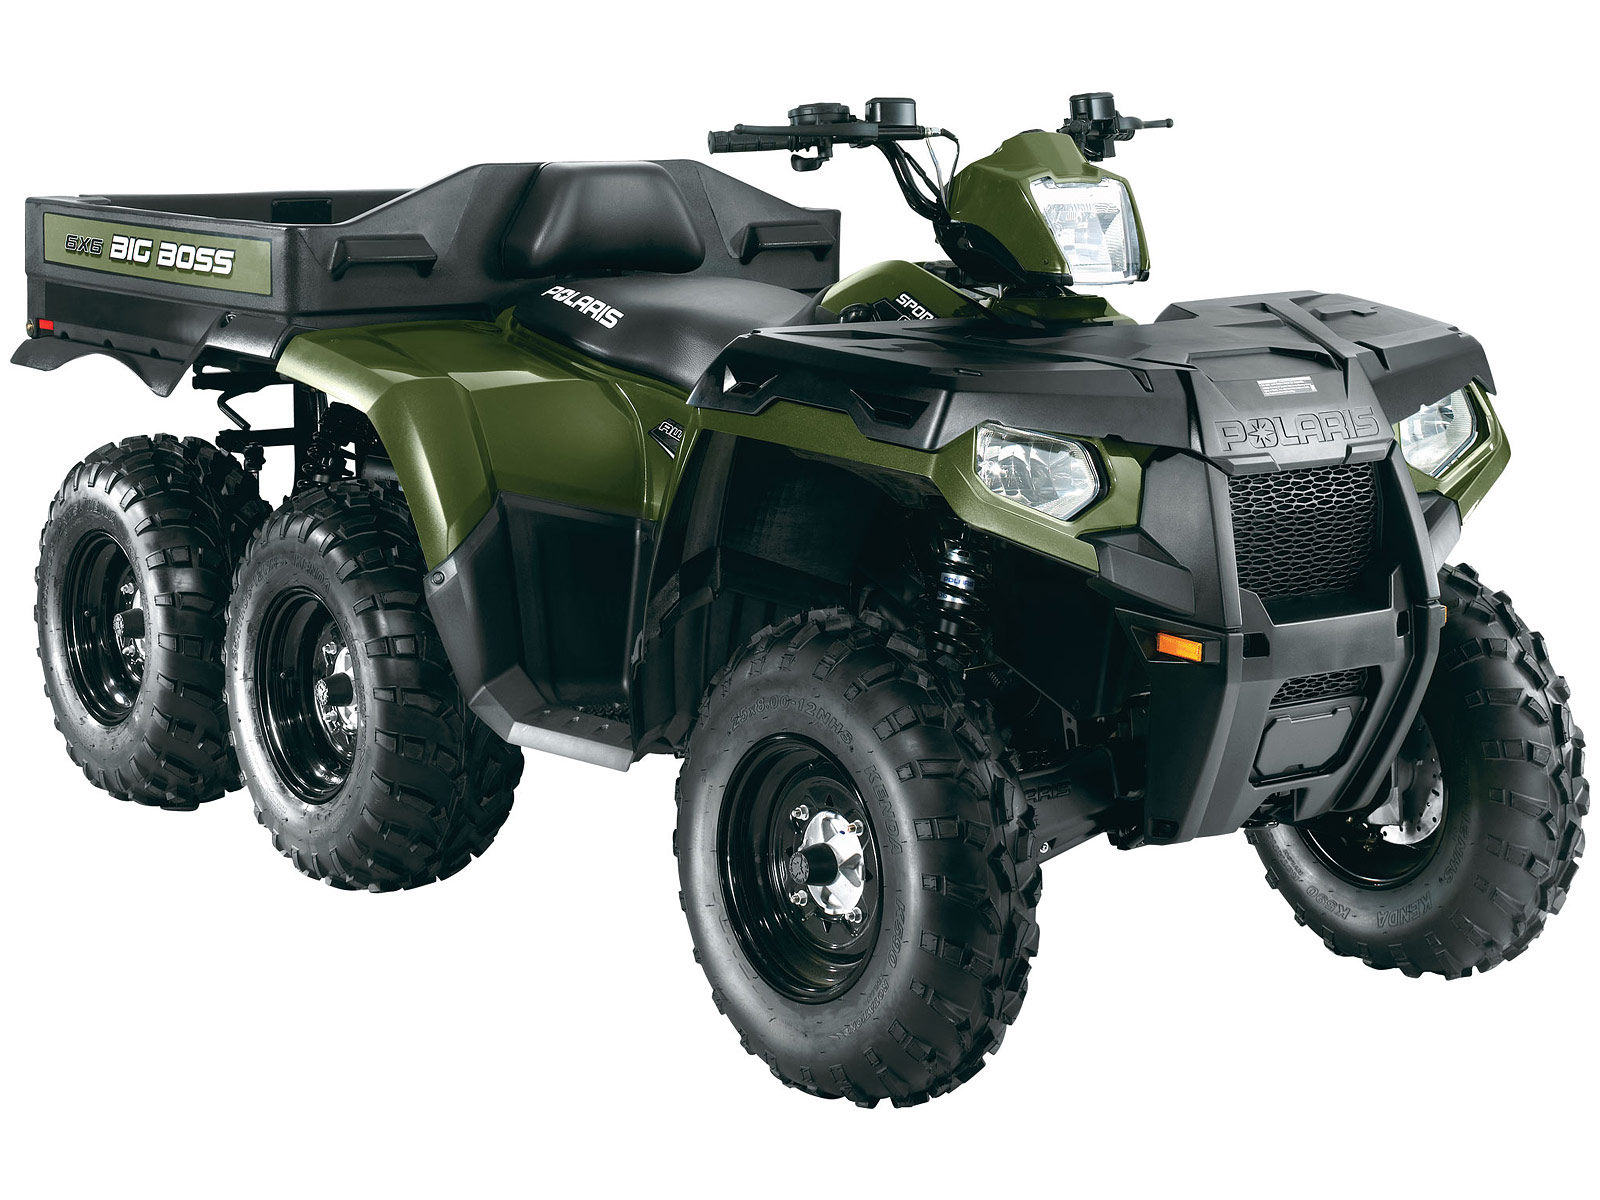 2012 polaris sportsman big boss 6x6 800 efi pictures. Black Bedroom Furniture Sets. Home Design Ideas